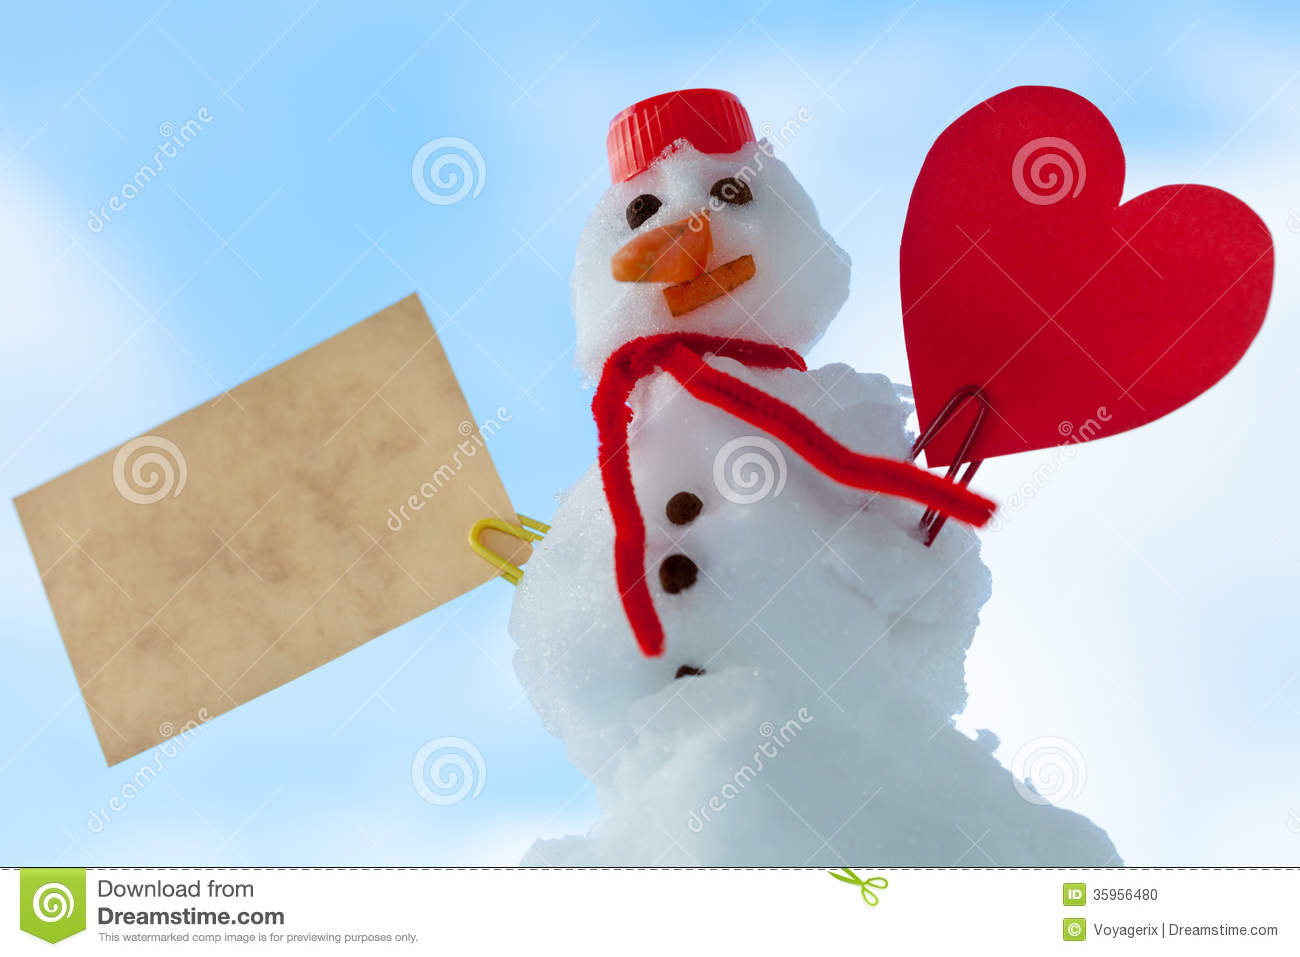 Snowman symbol text image collections symbol and sign ideas little happy christmas snowman red heart paper card outdoor royalty free stock photo buycottarizona biocorpaavc